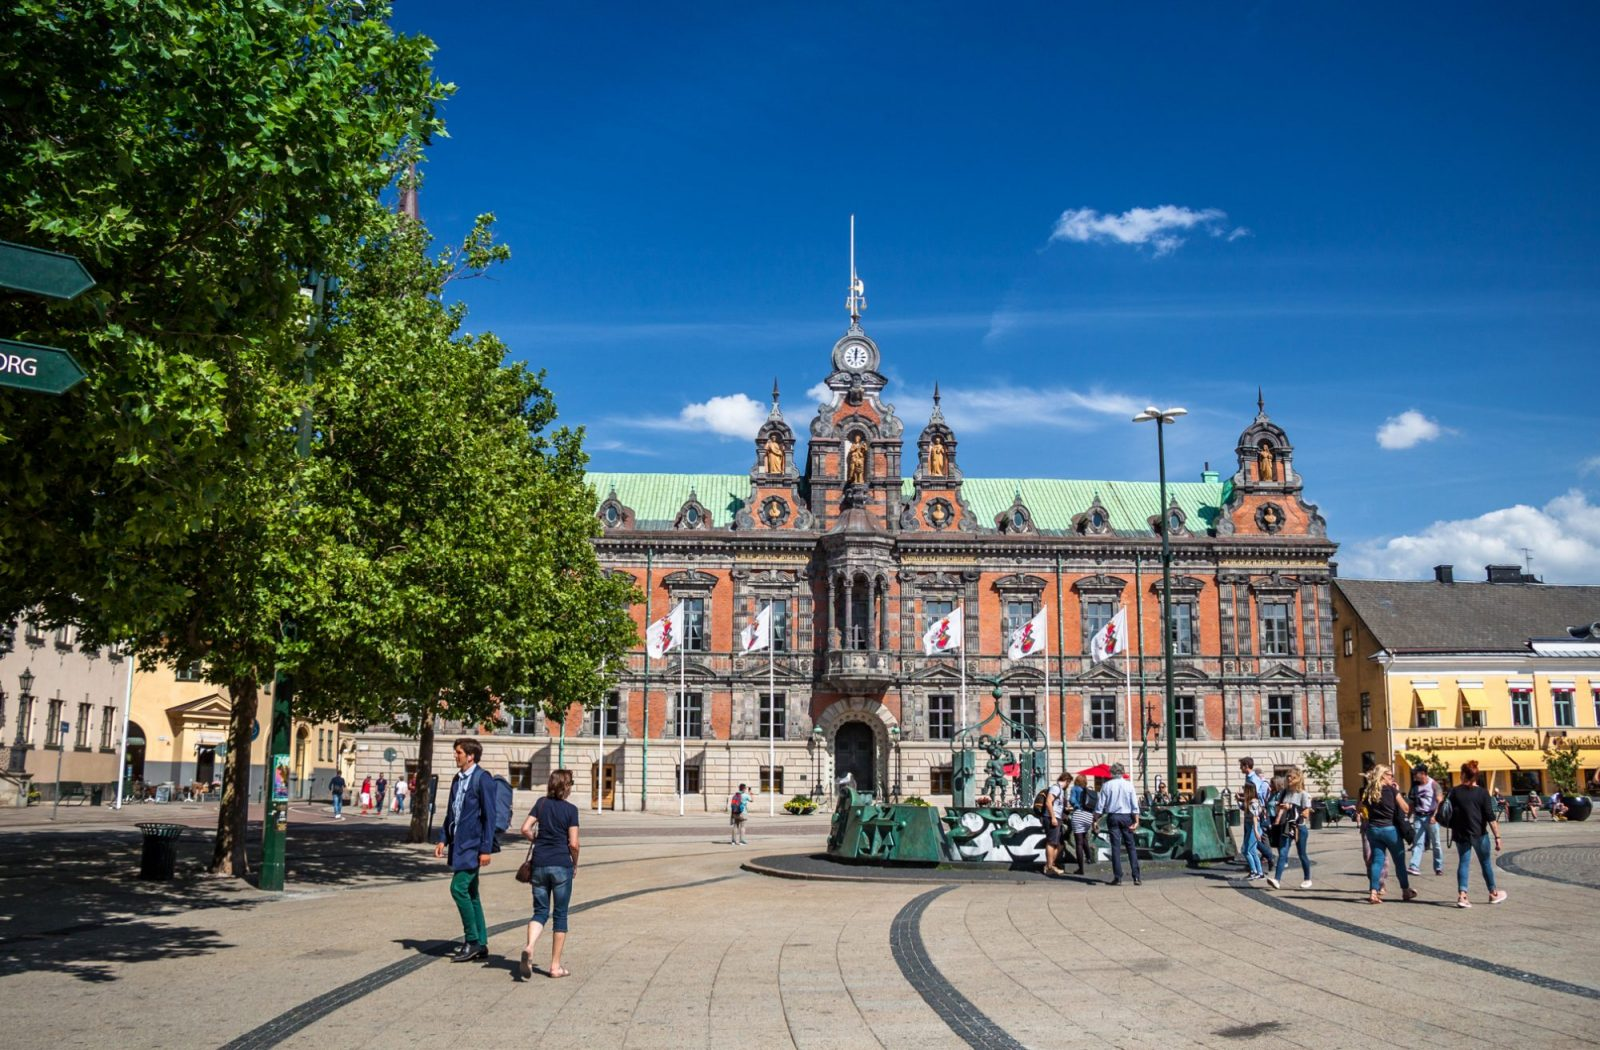 Things to do in malmo exploring sensational sweden just a pack stortorget market square in malmo sweden publicscrutiny Choice Image